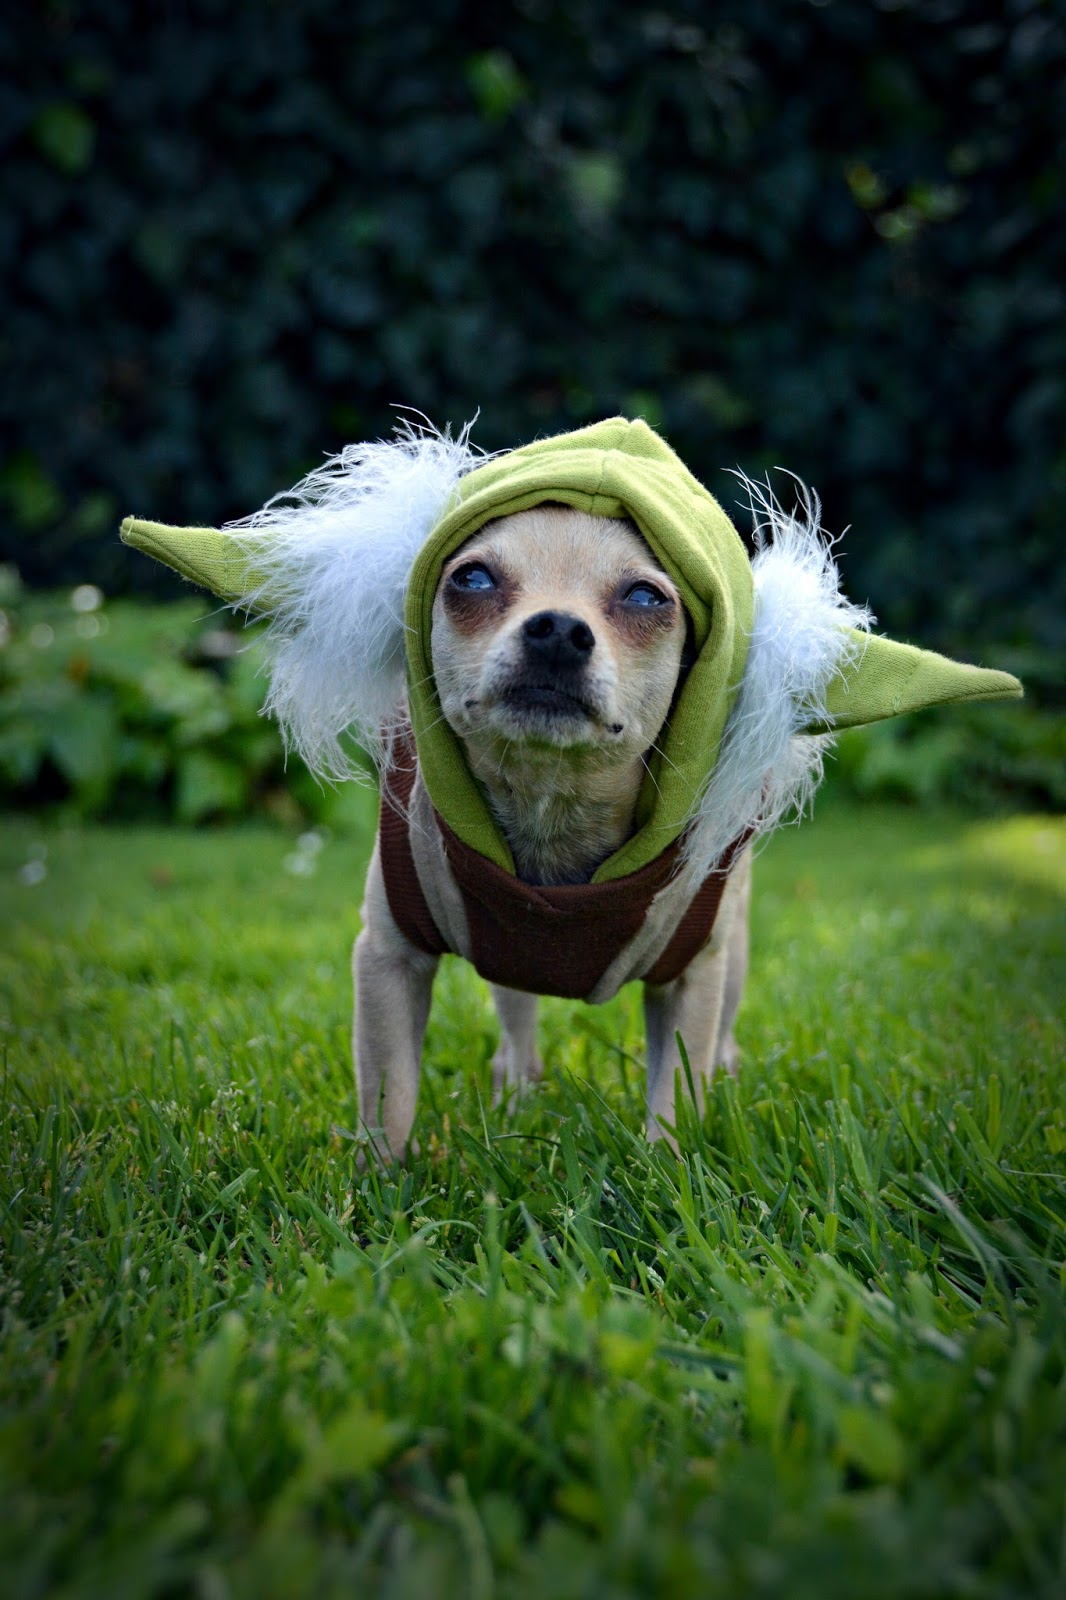 chihuahua Yoda Star Wars outfit & The Dog Geek: Happy Star Wars Day!